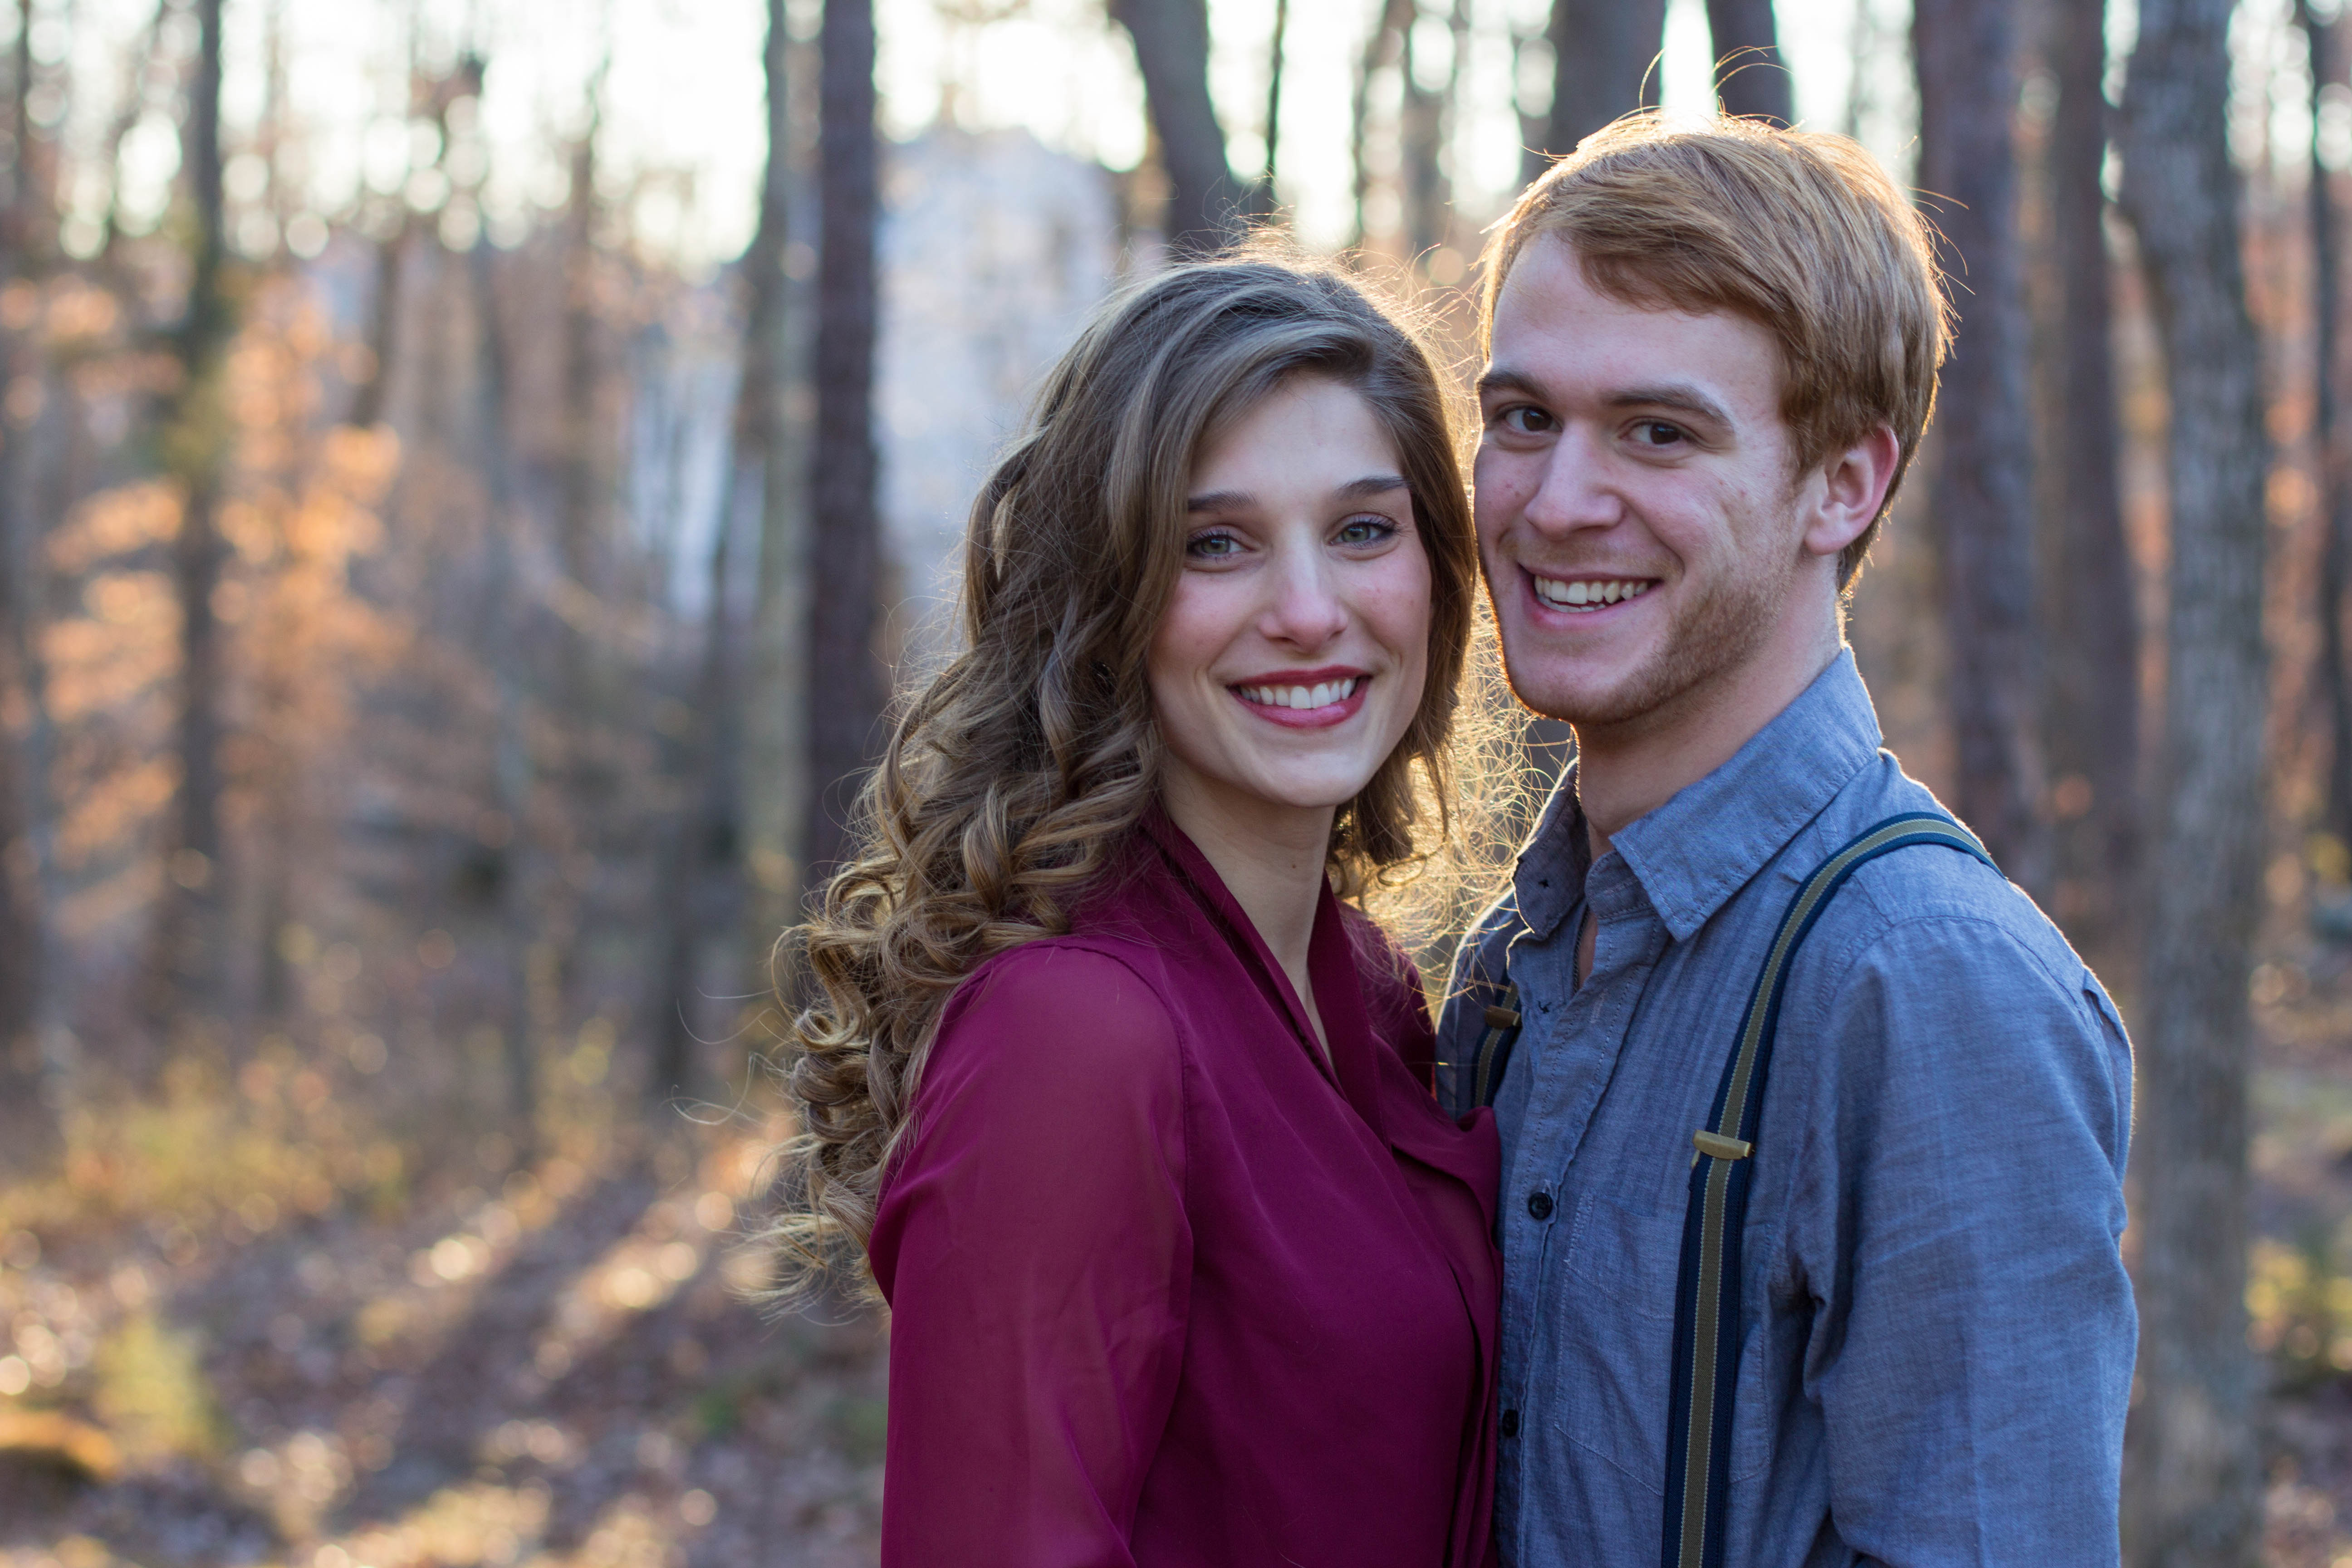 eufaula christian personals Eufaula's best 100% free christian girls dating site meet thousands of single christian women in eufaula with mingle2's free personal ads and chat rooms our network of christian women in.